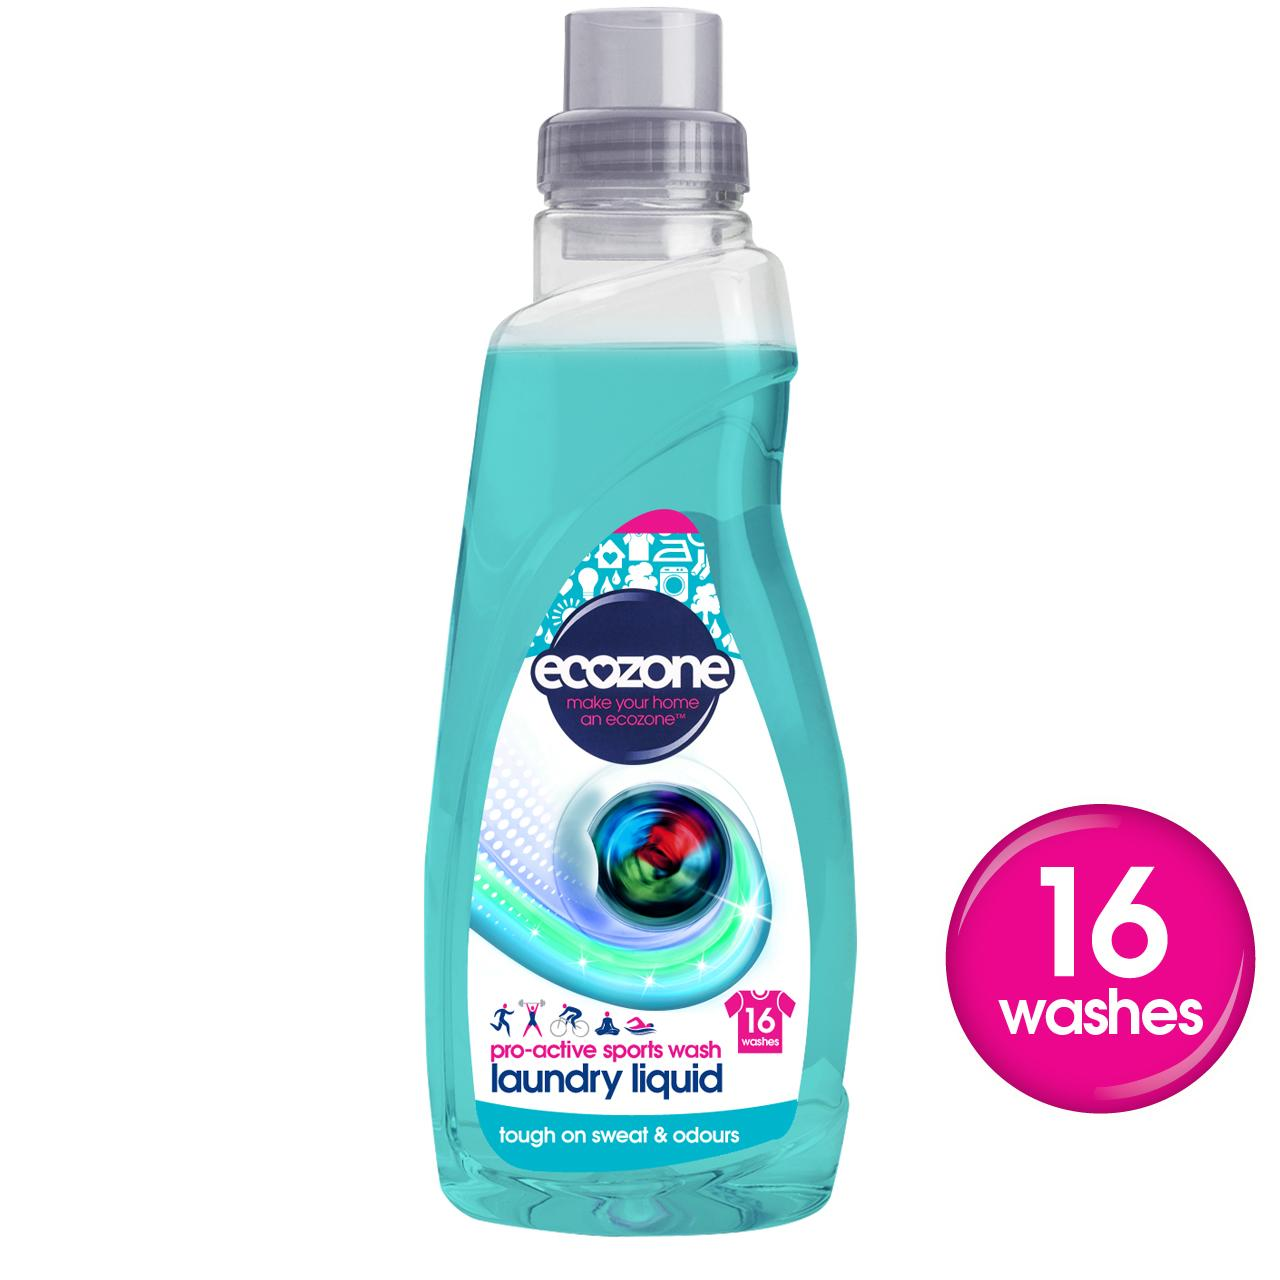 Ecozone Pro-Active Sports Wash Laundry Liquid 750ml